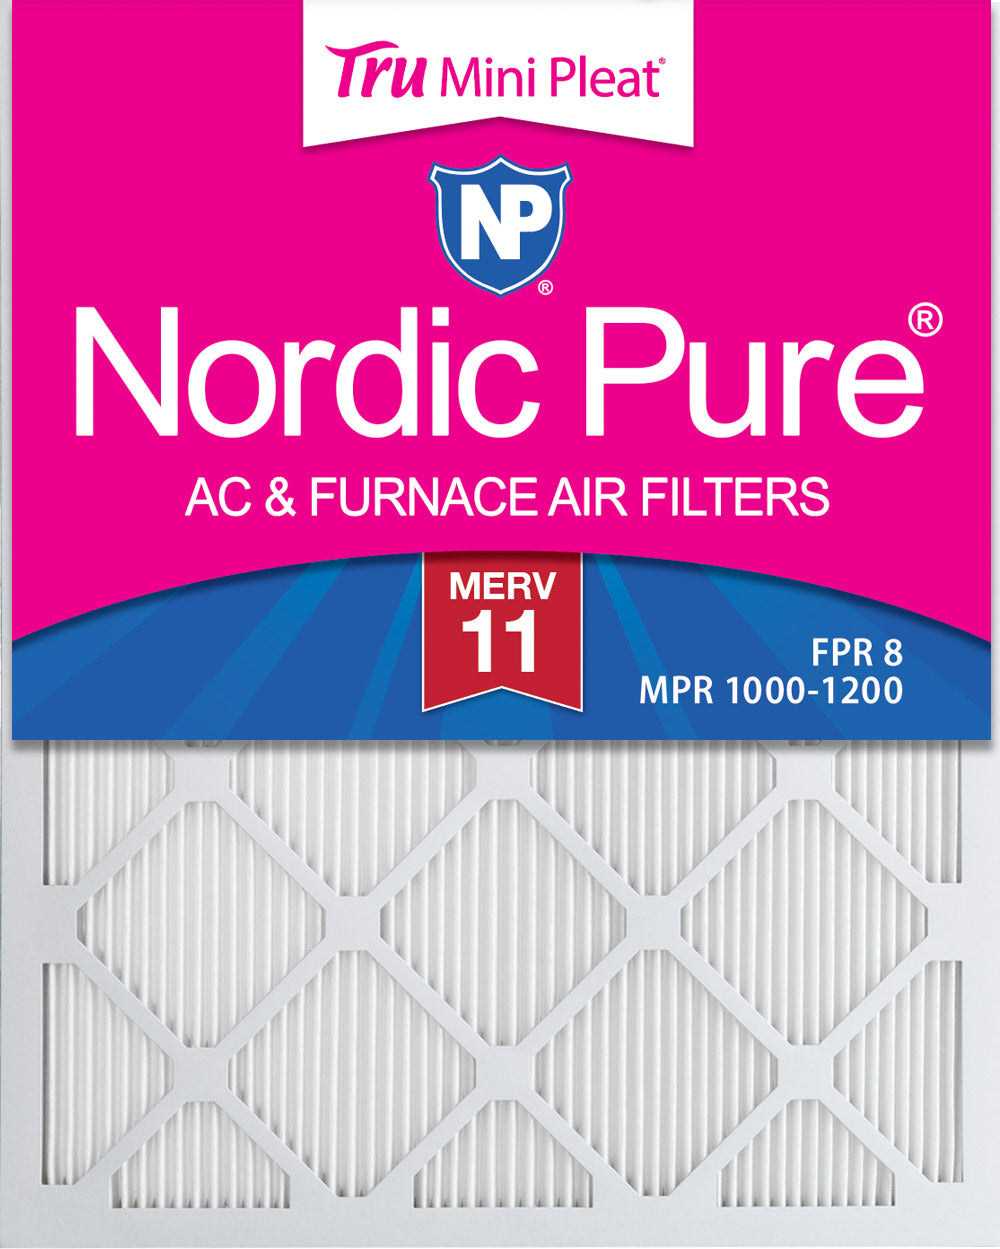 16x20x1 Tru Mini Pleat MERV 11 AC Furnace Air Filters 3 Pack